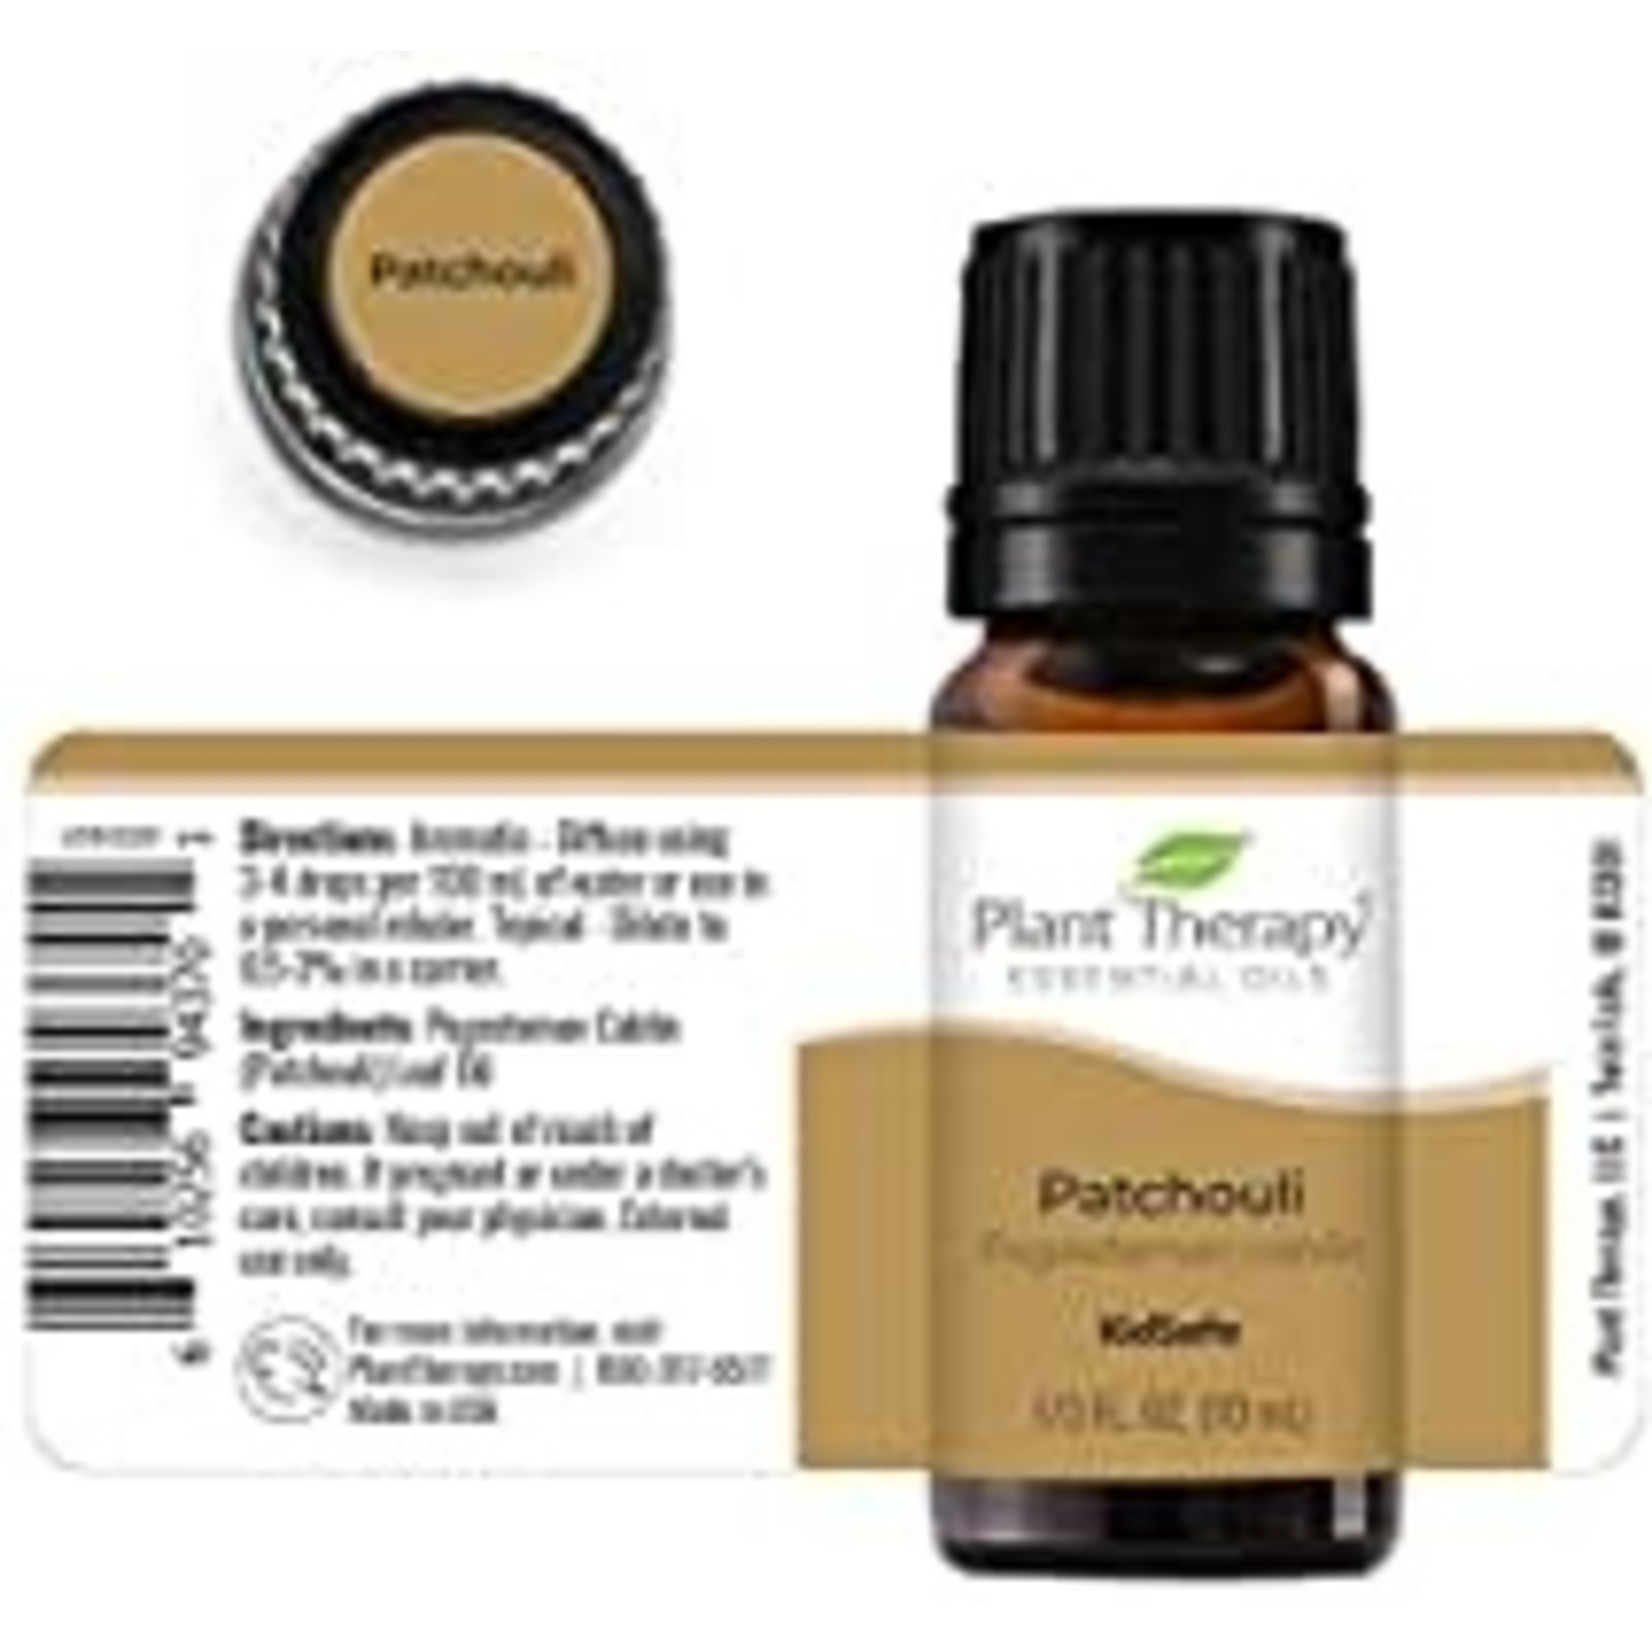 Plant Therapy PT Patchouli Essential Oil 10ml